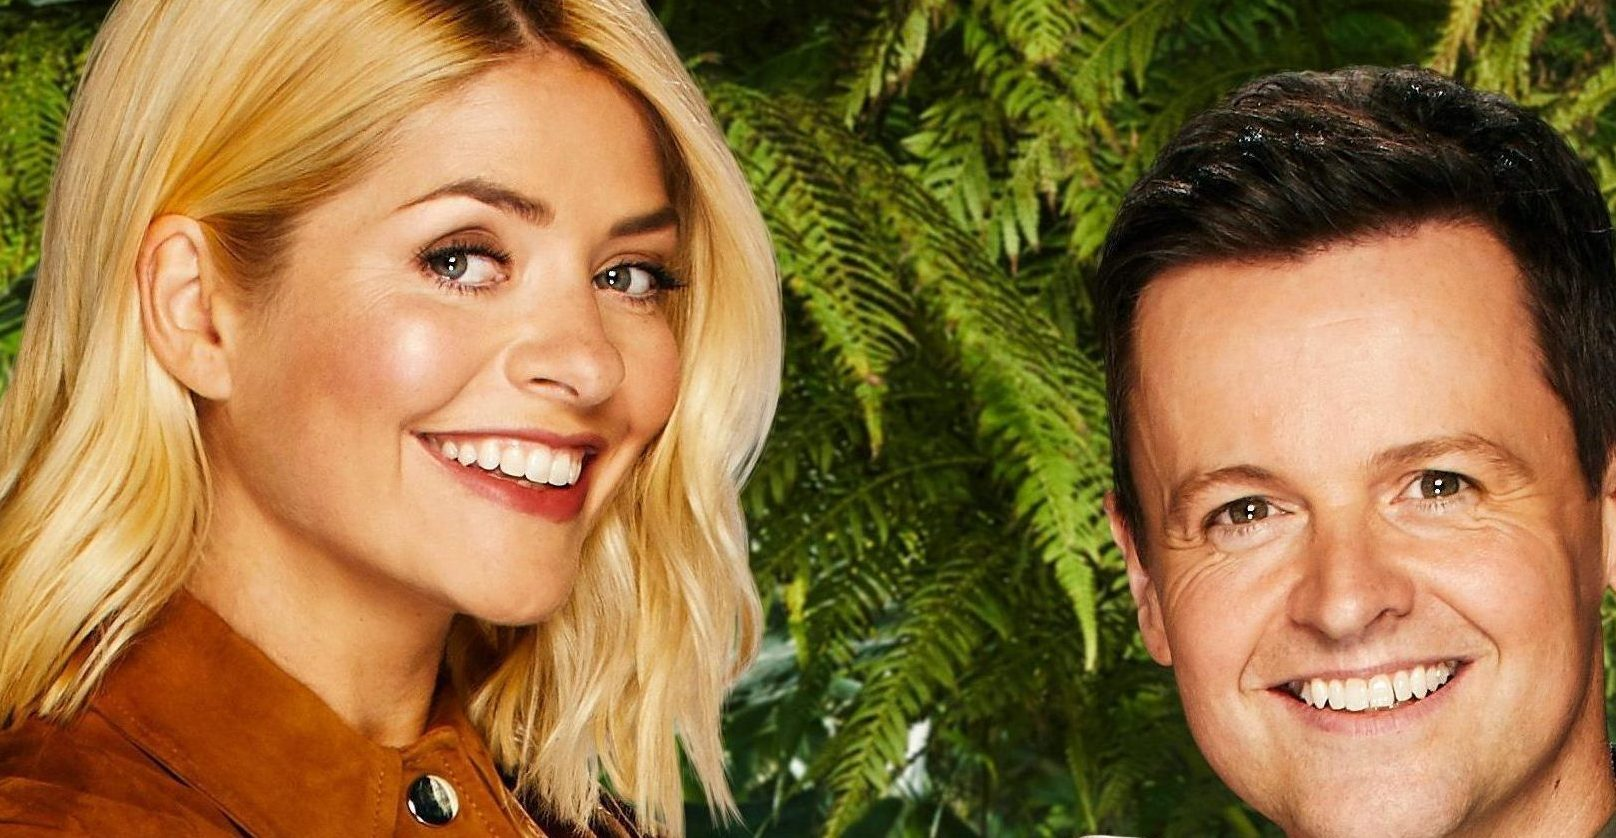 The complete I'm A Celebrity 2018 line-up